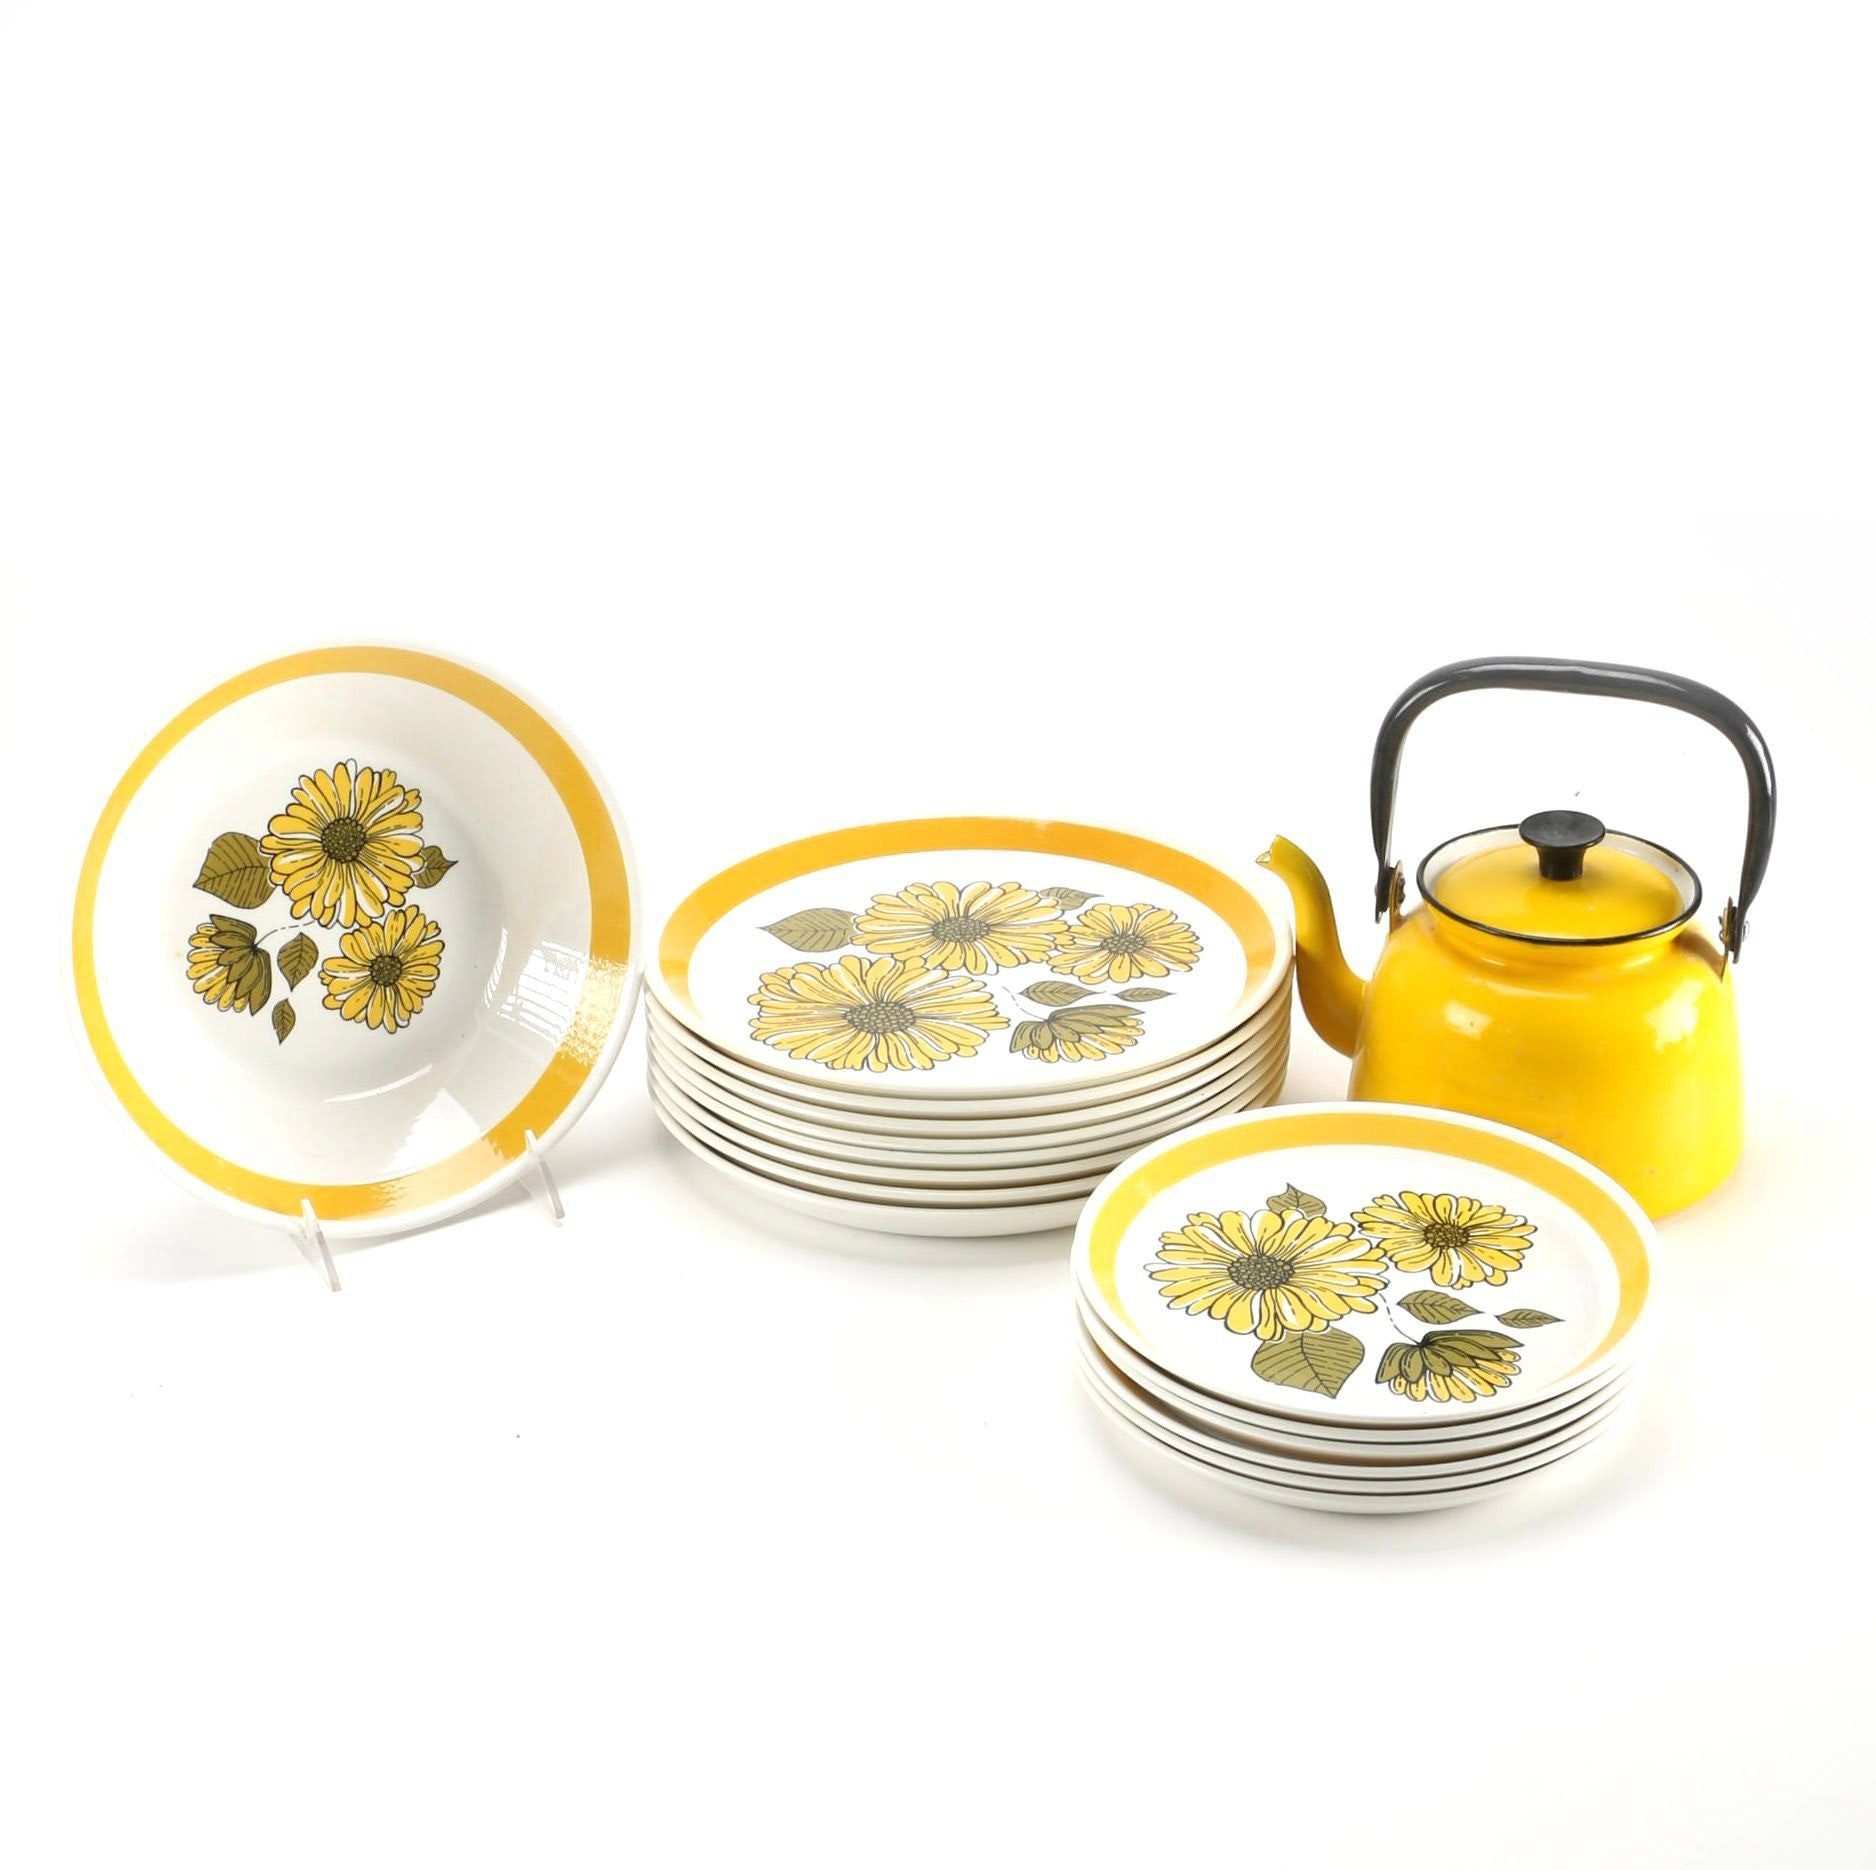 "Yellow Enamel Teapot With Crown Lynn Forma ""Charmaine"" Dishes"